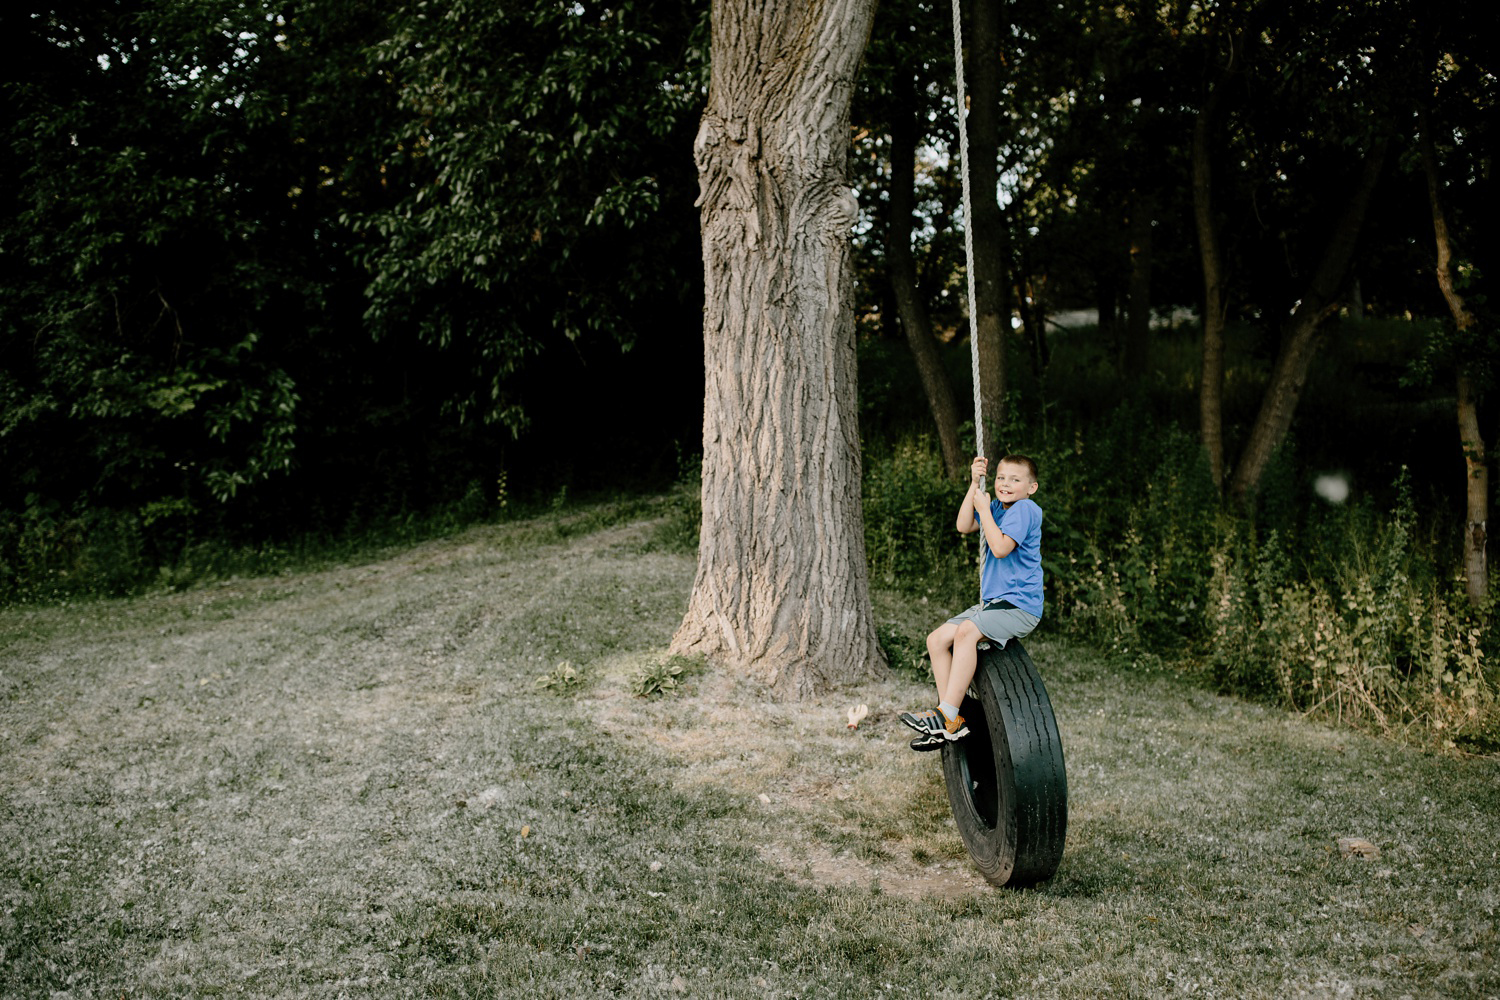 boy swinging on tire swing